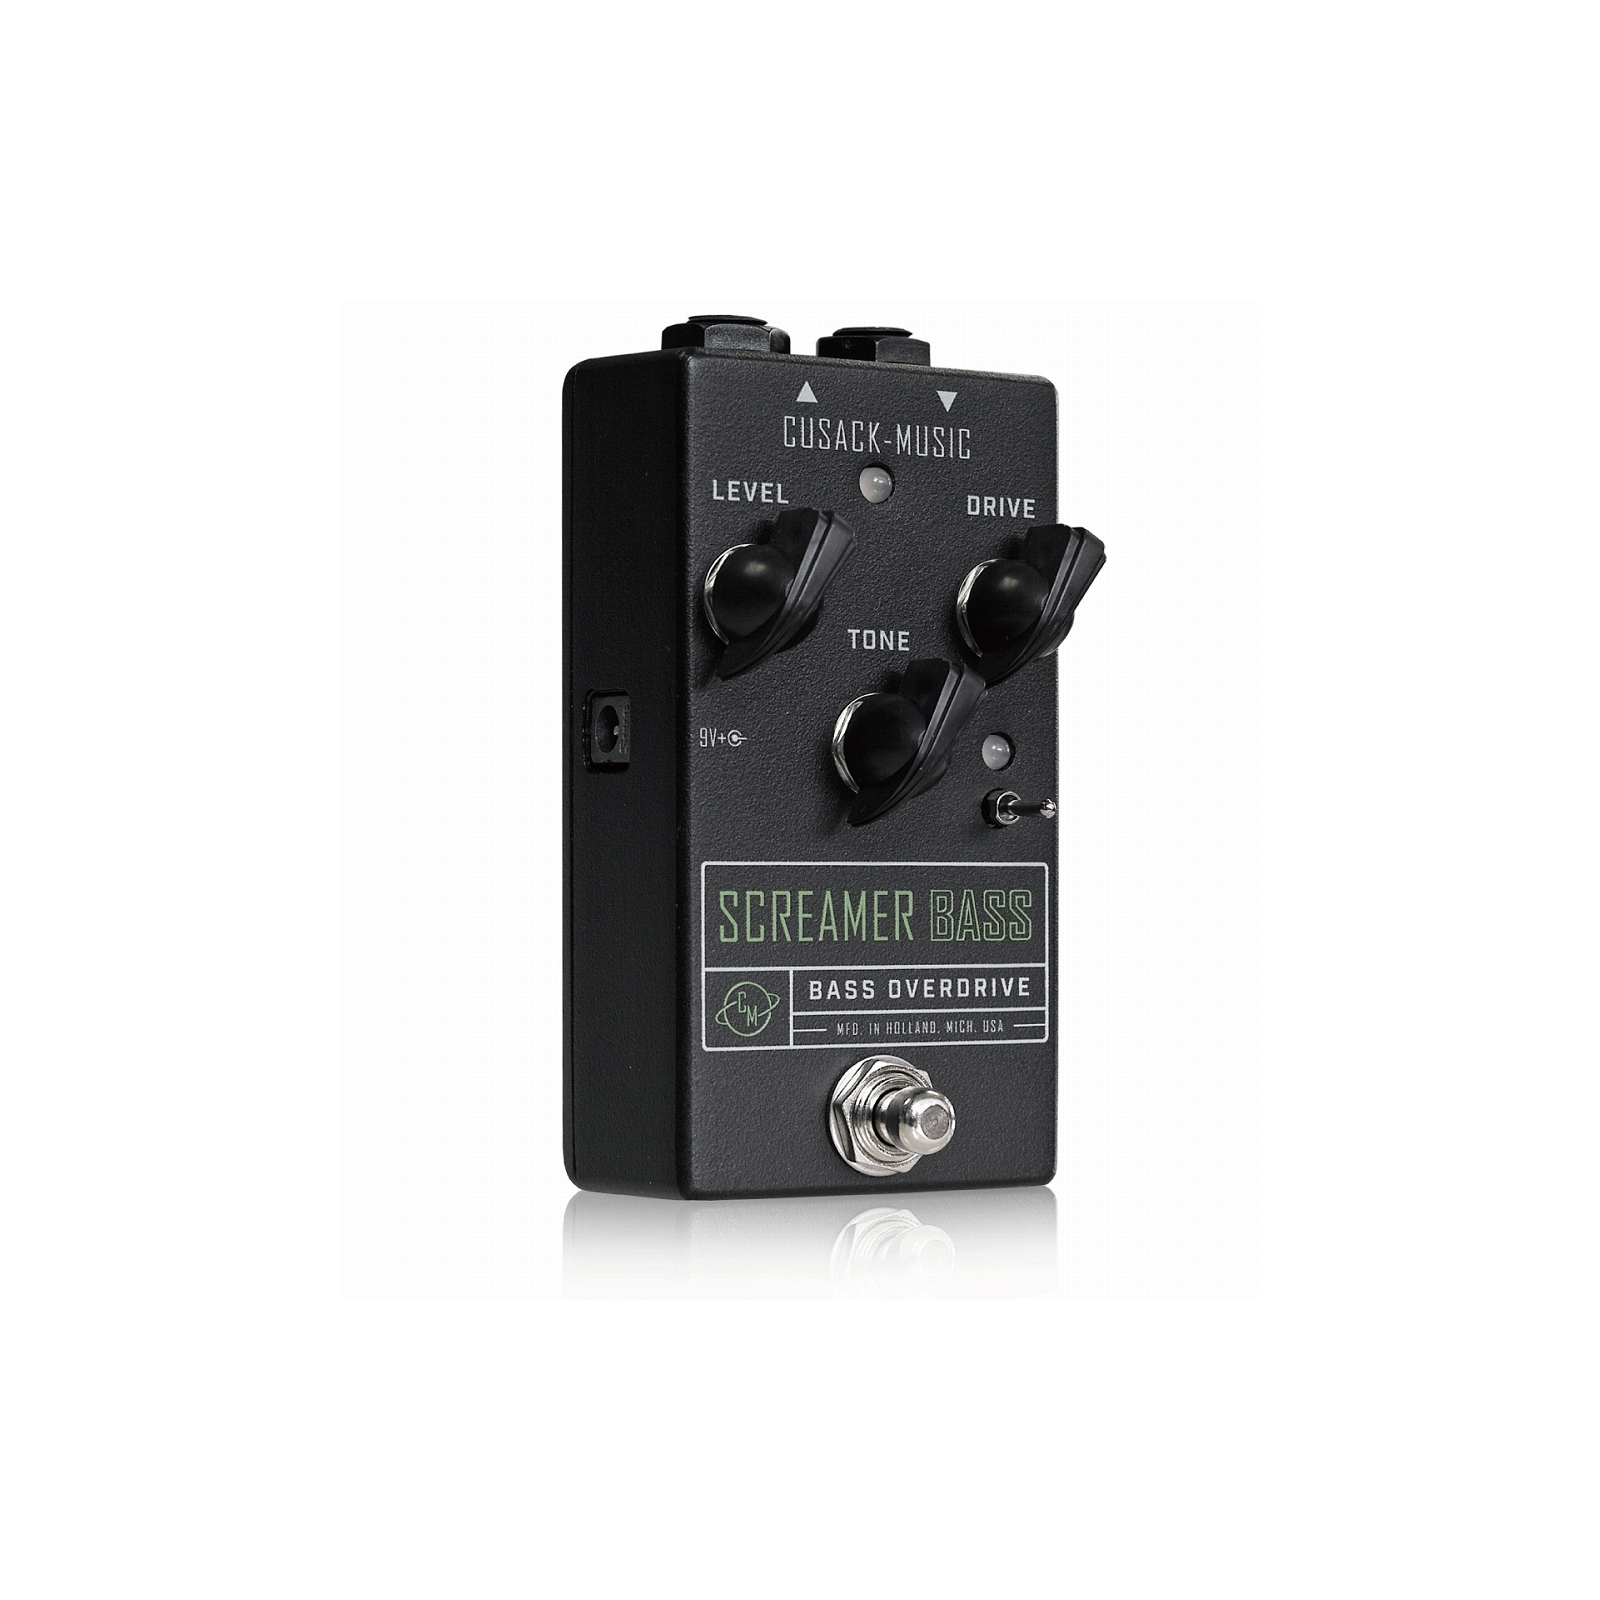 CUSACK MUSIC SCREAMER BASS PEDAL